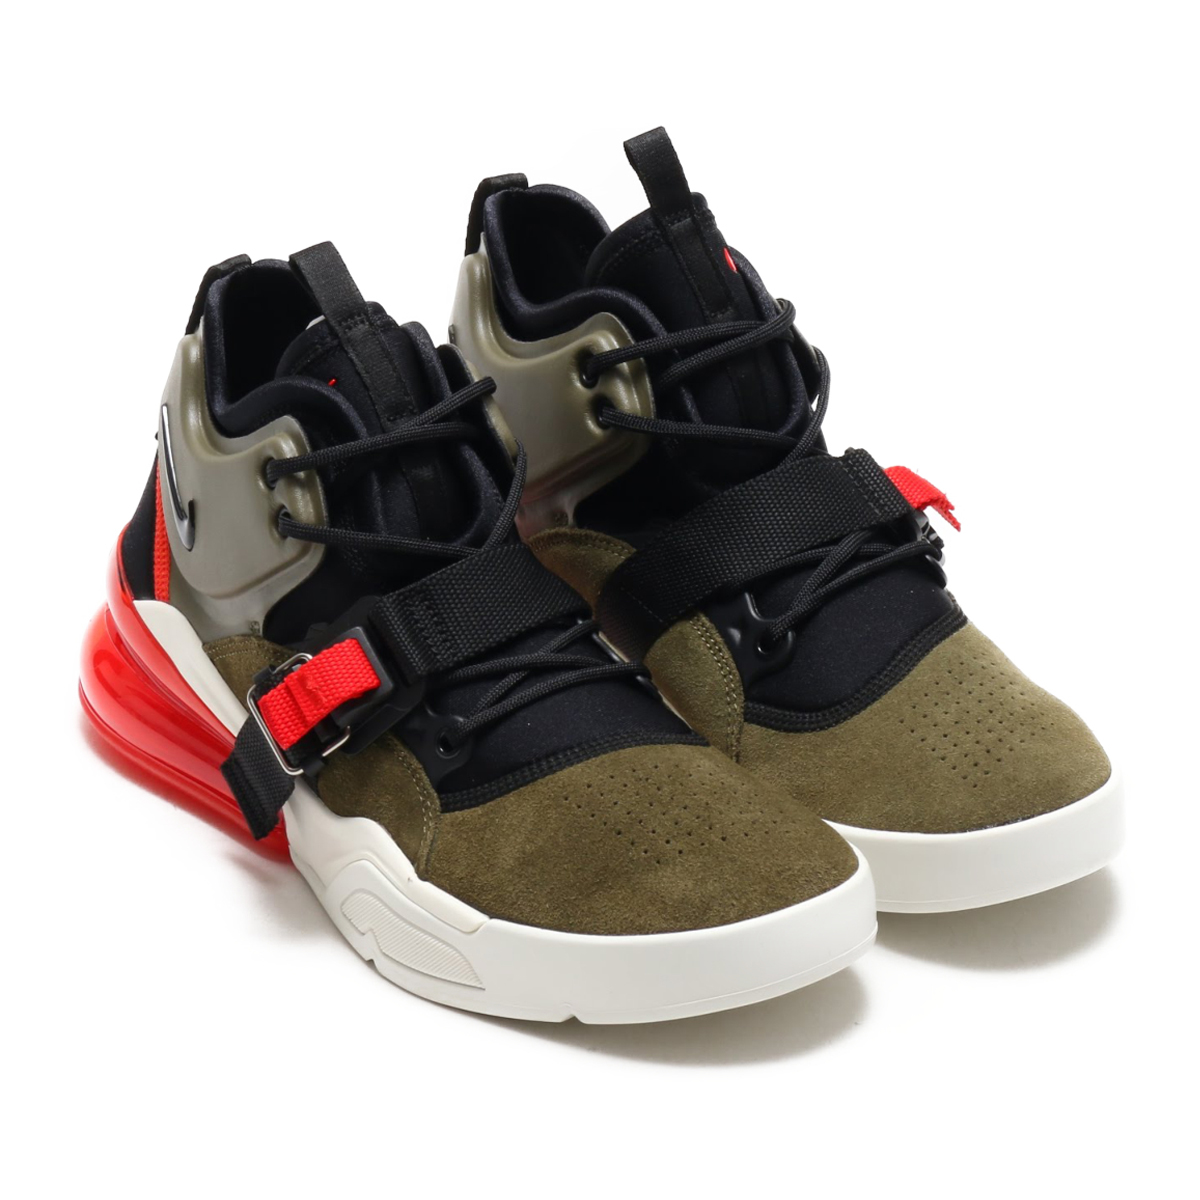 a621c554447 atmos pink  NIKE AIR FORCE 270 (Nike air force 270) (MEDIUM OLIVE BLACK-CHALLENGE  RED-SAIL) 18SU-S